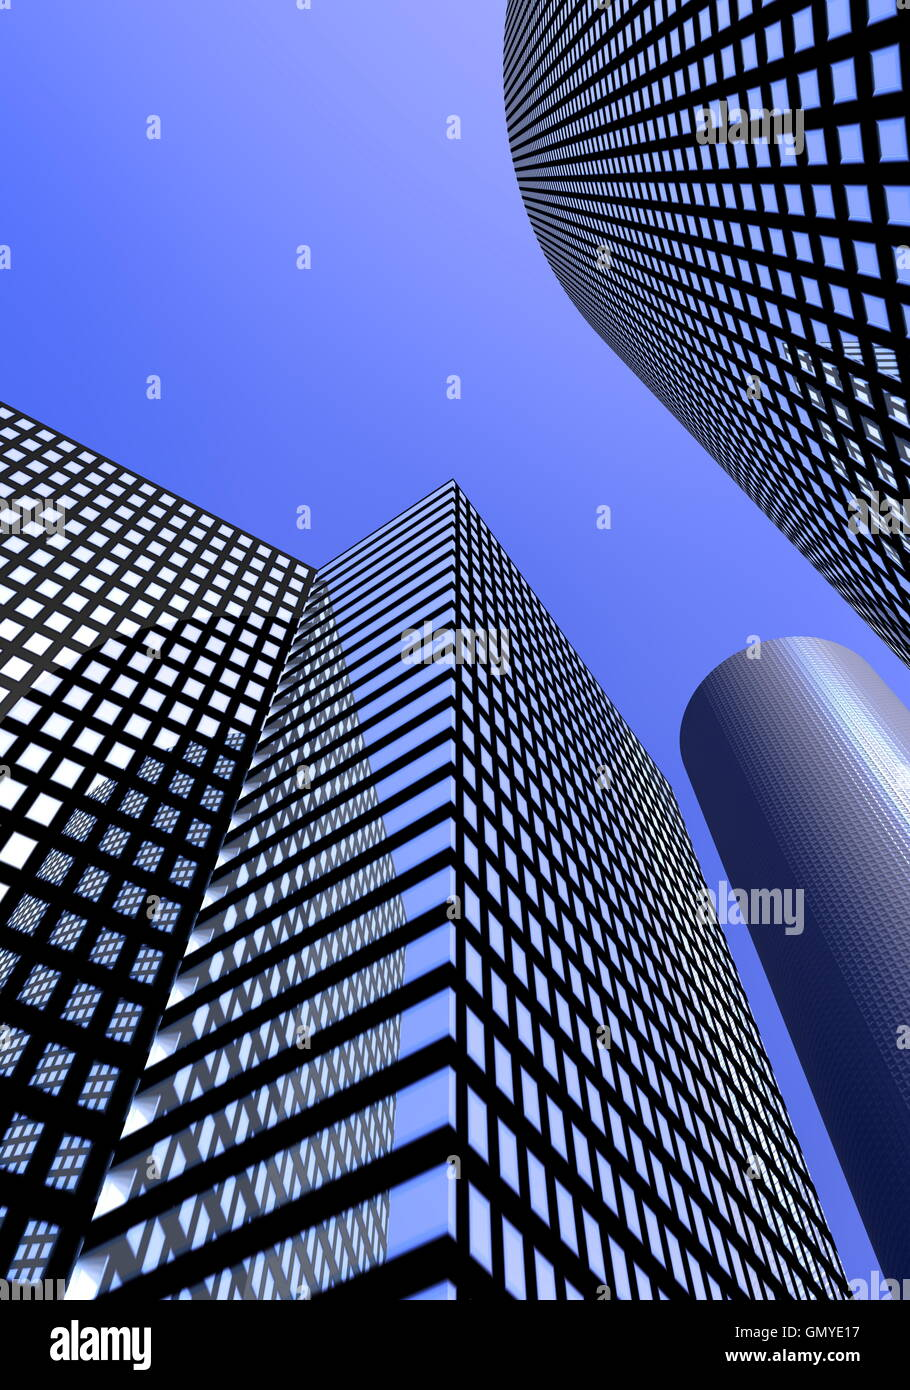 Office buildings - Stock Image